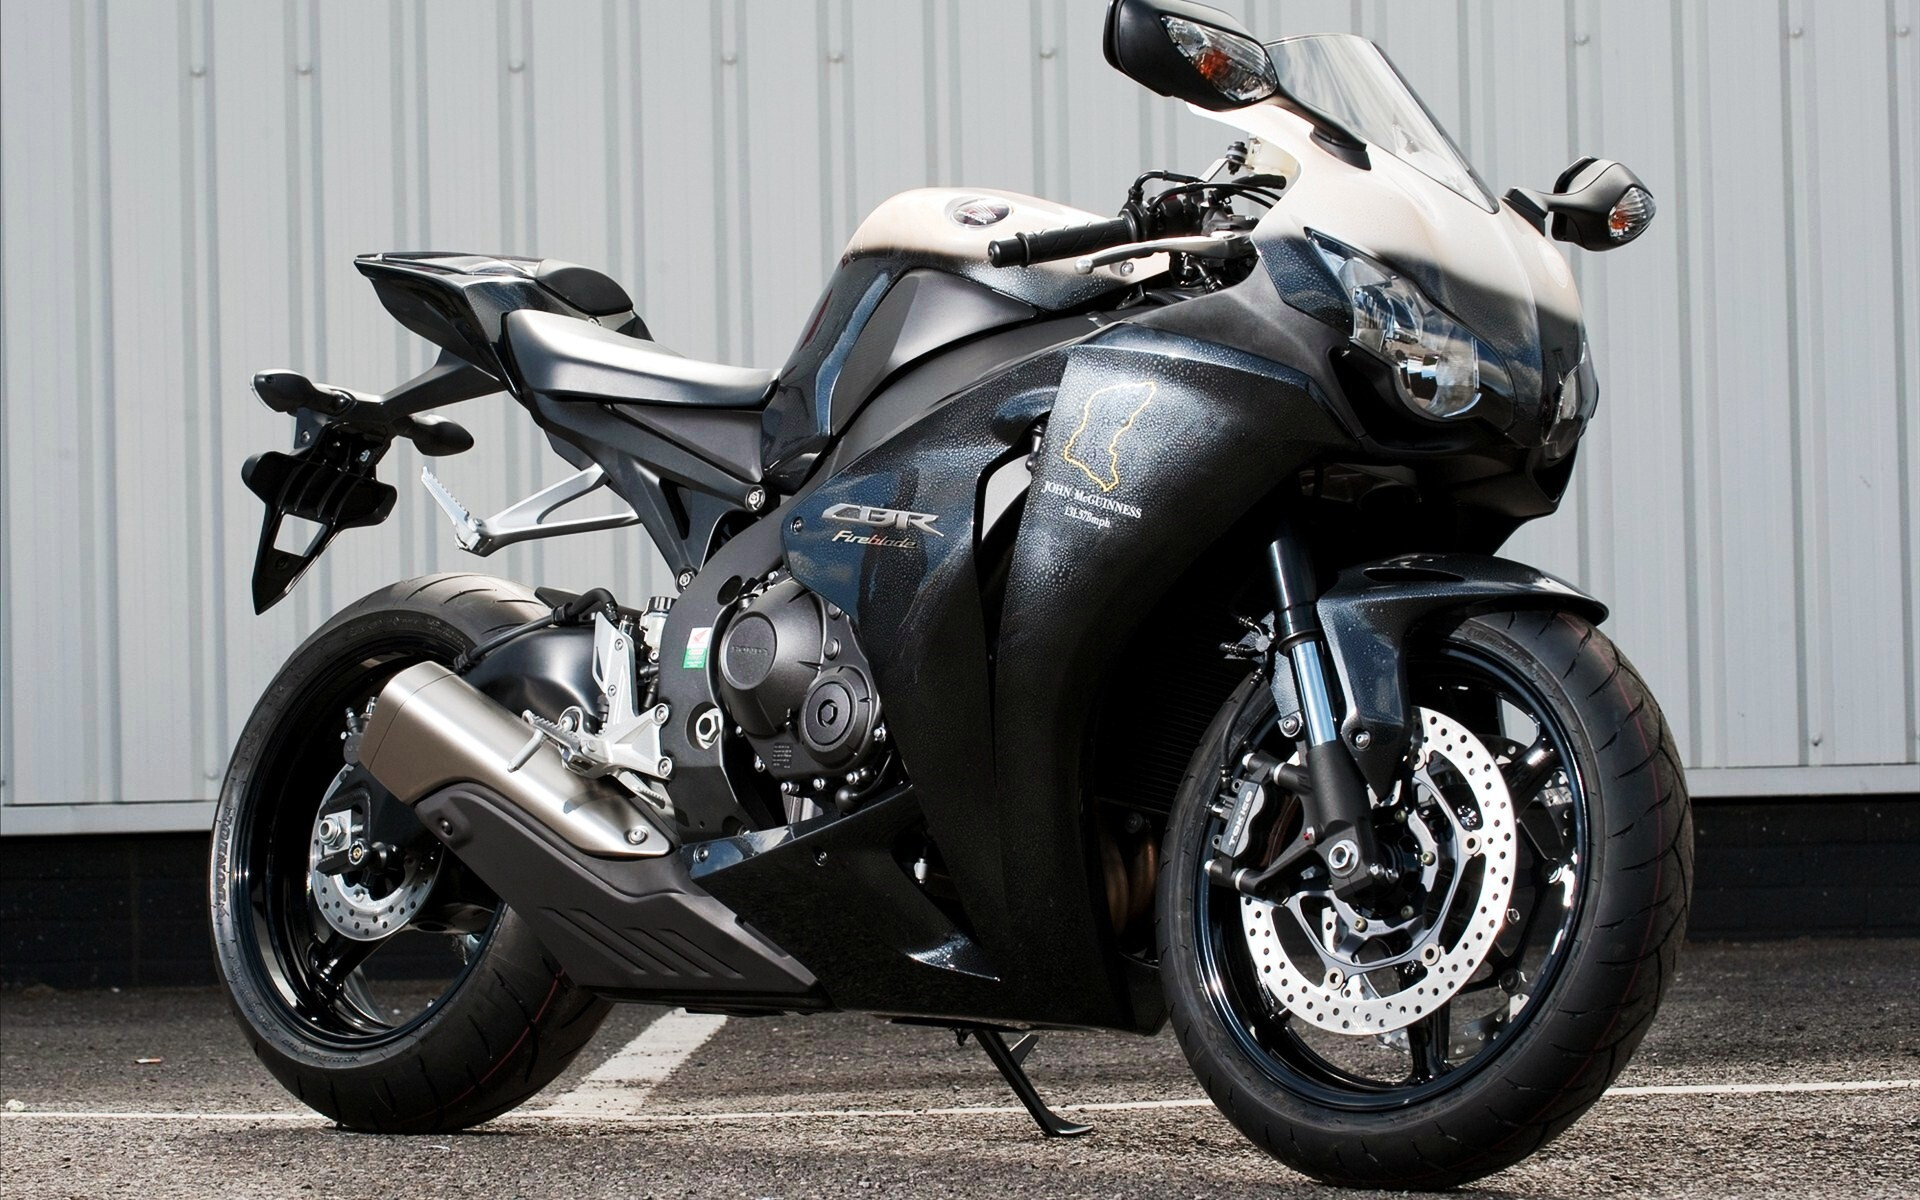 honda sport cbr 100 new bike hd wallpapers | hd wallpapers